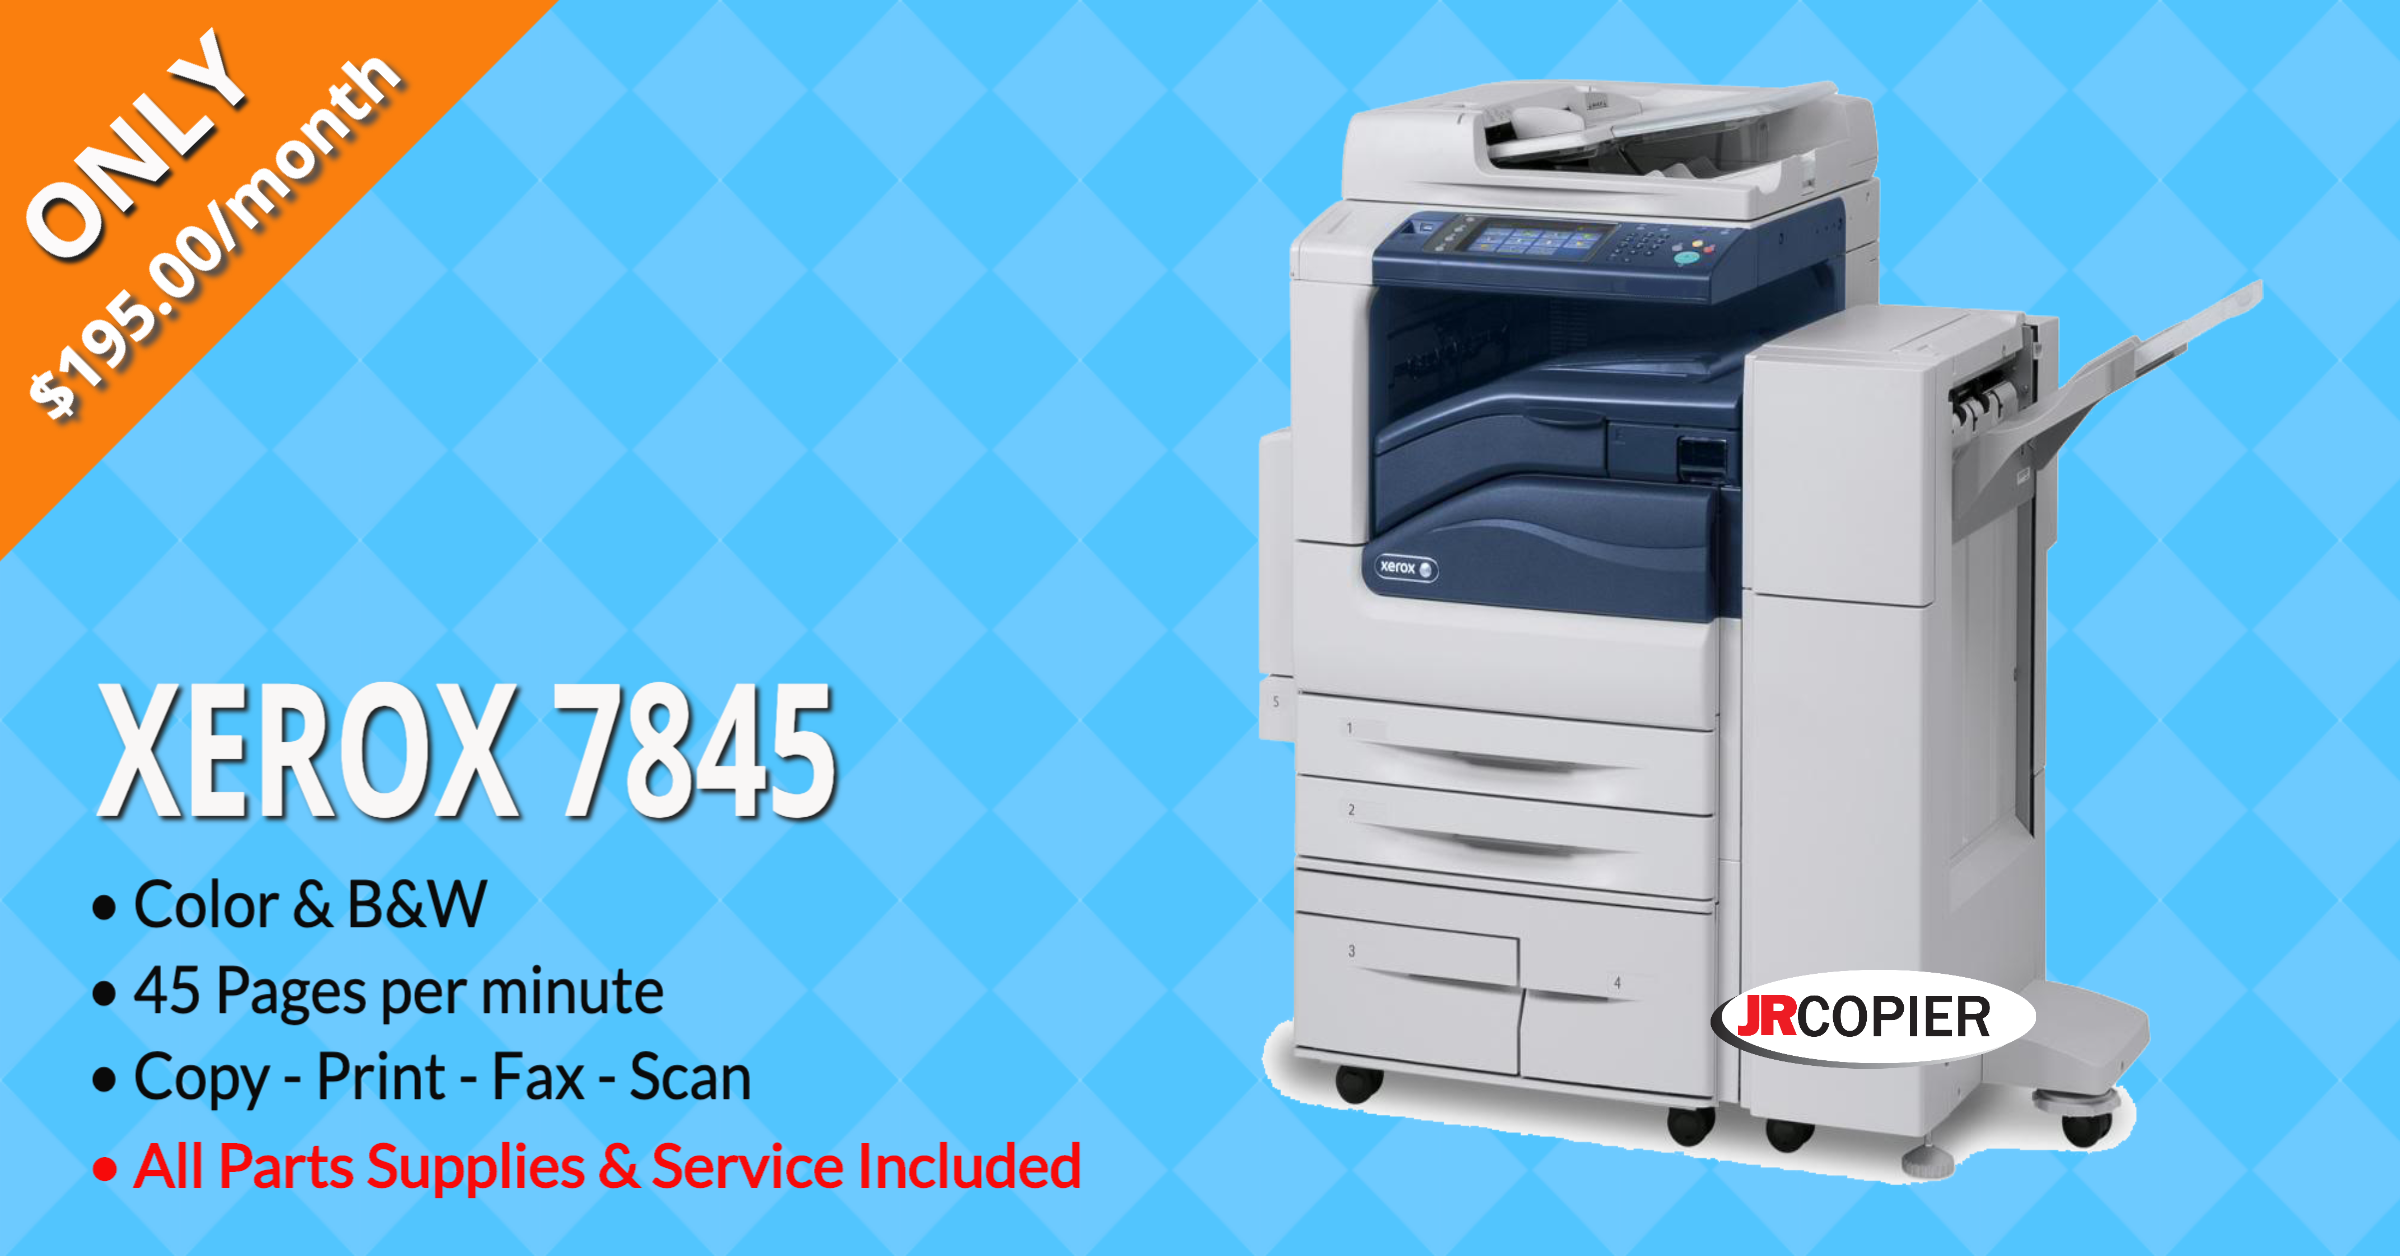 Printer Leasing Company 11779